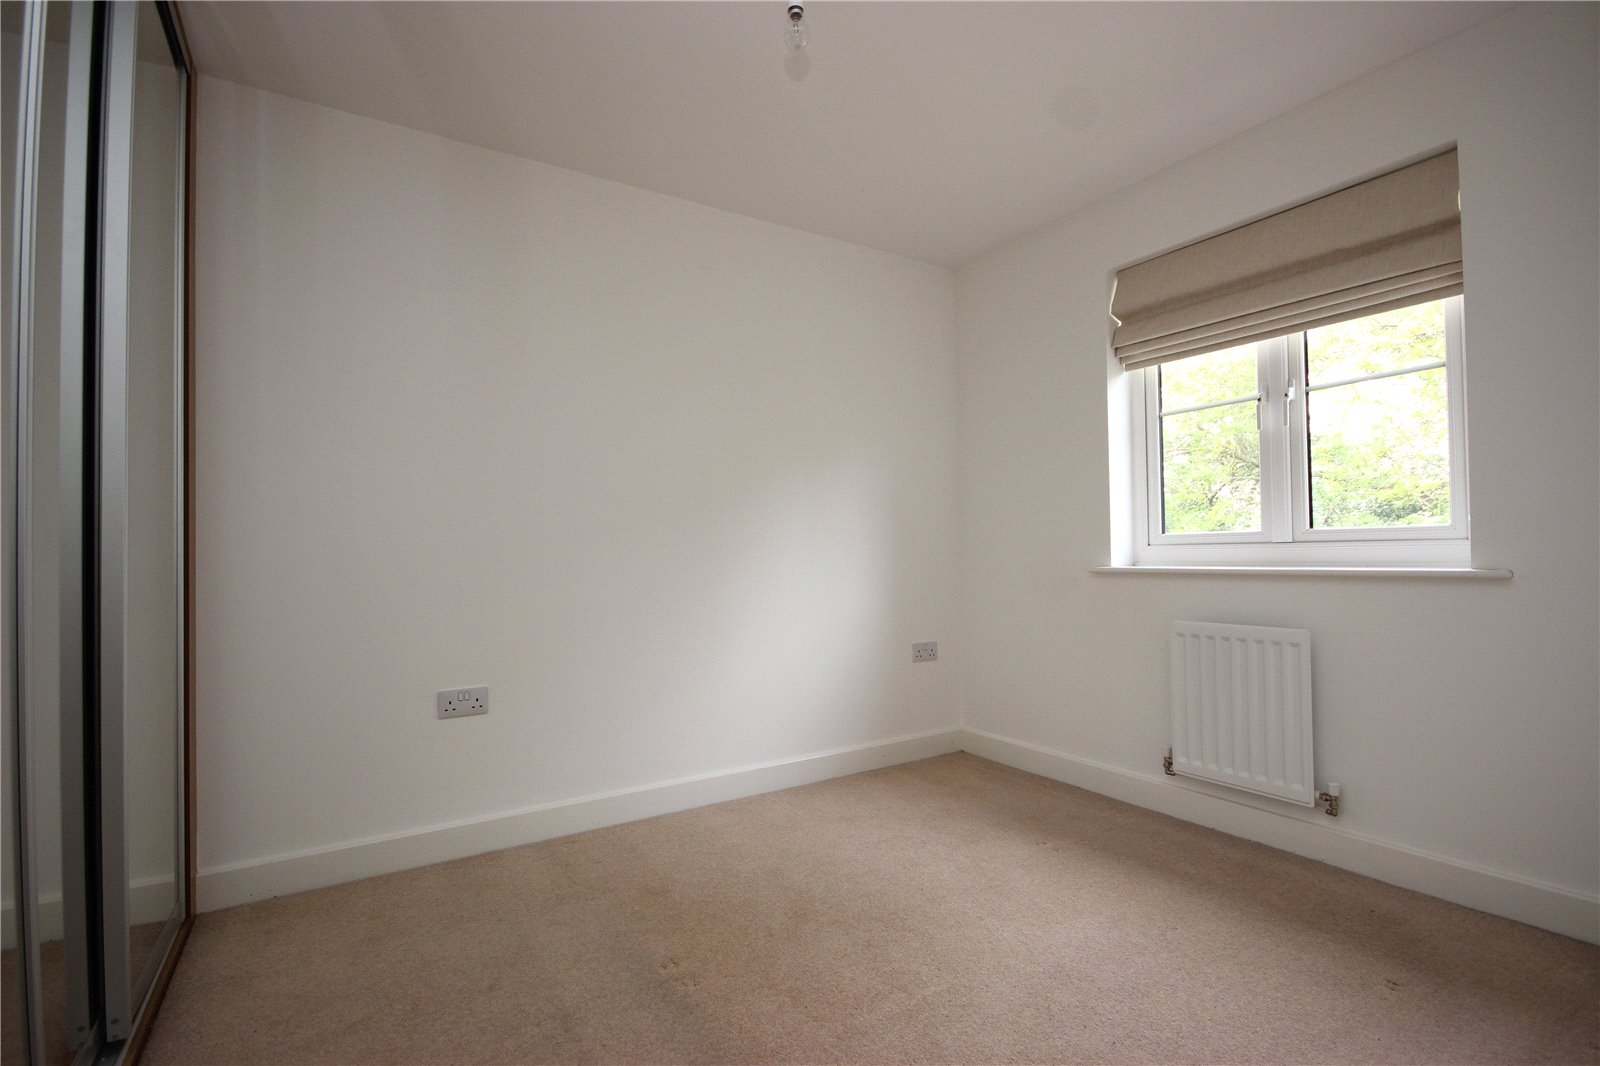 Cj Hole Bradley Stoke 4 Bedroom House To Rent In Oxleigh